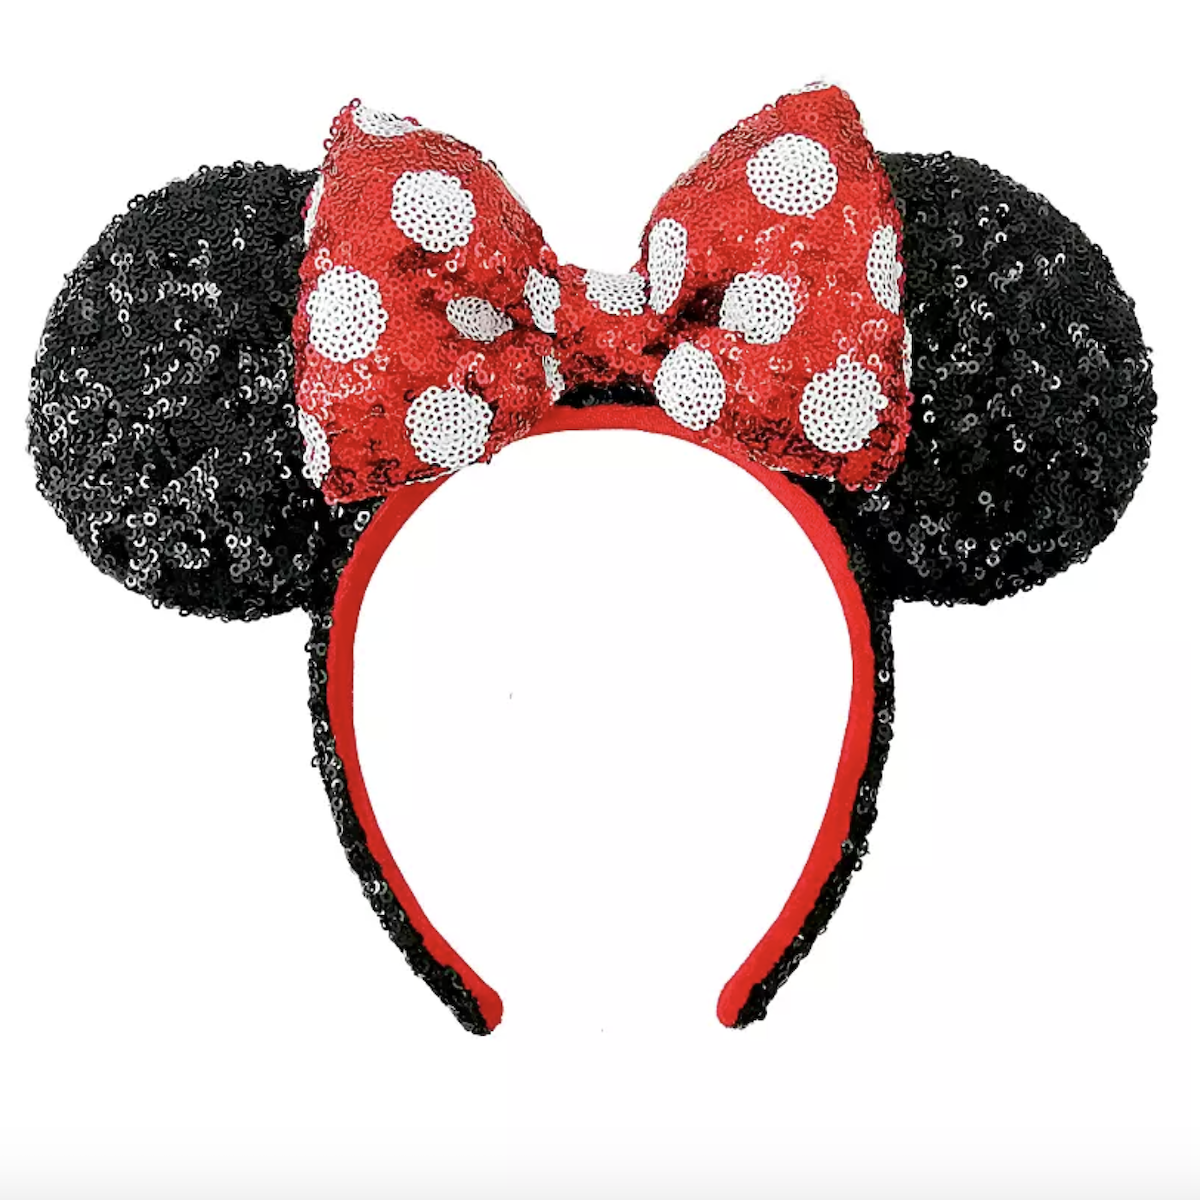 Minnie Mouse sequined ear headbands red and white